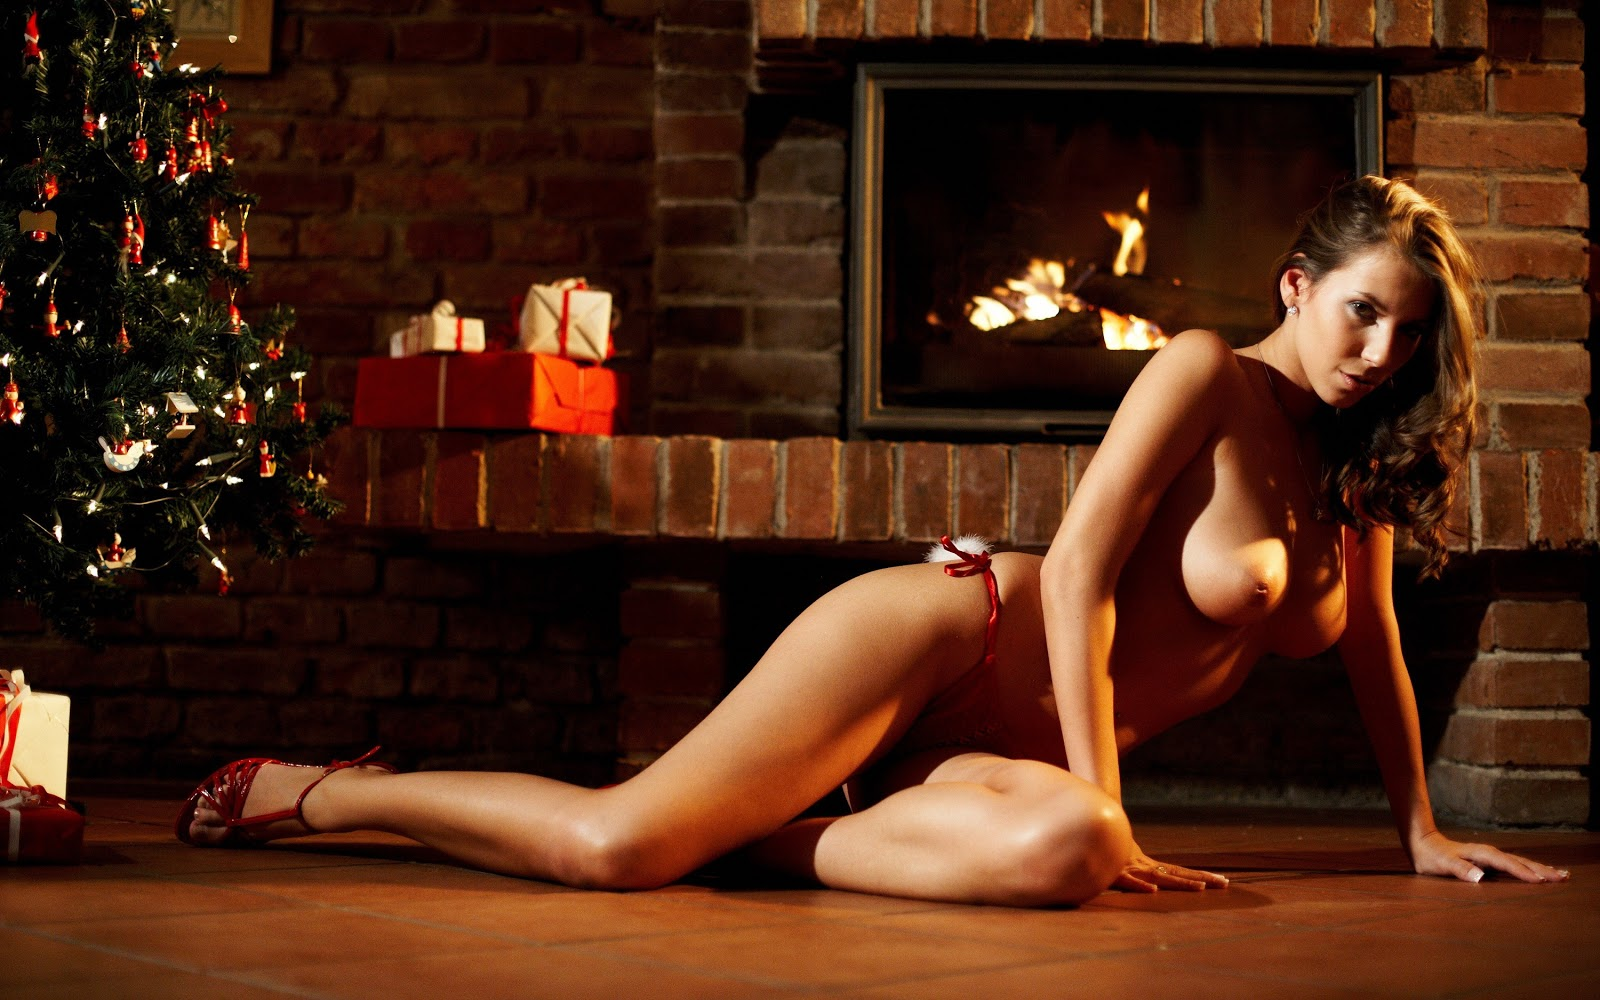 Christmas erotic nude woman's wallpaper nsfw young models